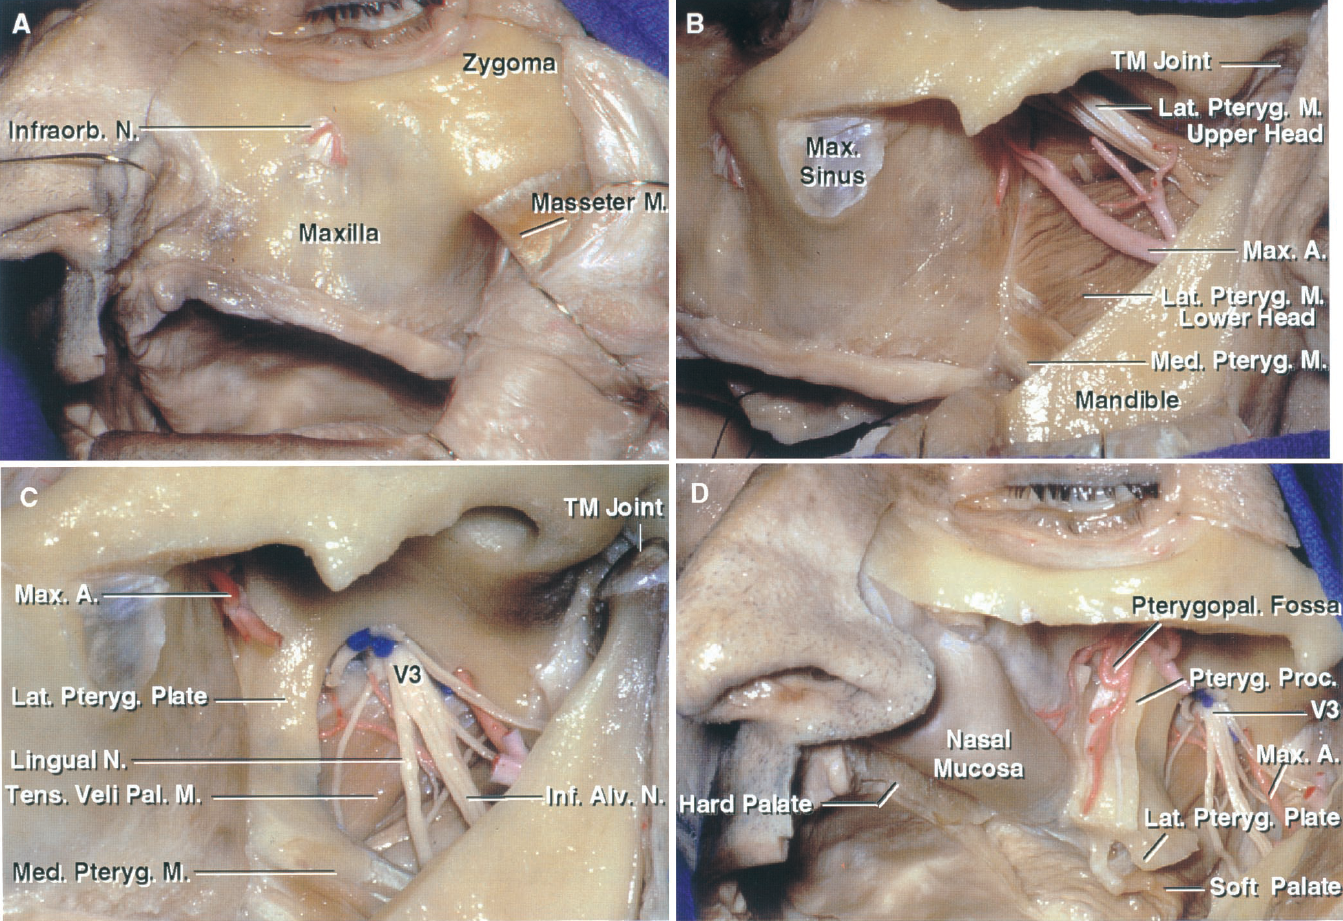 FIGURE 6.14. A–D. Lower maxillotomy route to the clivus and foramen magnum. A, the approach can be made through a degloving incision inside the mouth; however, in this case, to more fully show the anatomy, a Weber-Fergusson paranasal incision with an infraorbital extension is used to expose the anterior face of the maxilla. The infraorbital nerve has been divided, although it can usually be preserved with the degloving incision. The masseter is attached along the lower margin of the zygoma. B, the mucosal lining the maxillary sinus is exposed below the zygomatic arch. The coronoid process of the mandible is removed or reflected with the temporalis muscle to expose the medial and lateral pterygoid muscles and the maxillary artery in the infratemporal fossa. C, the lateral pterygoid muscles and a segment of the maxillary artery have been removed. Removal of the lateral pterygoid exposes the mandibular nerve and its branches in the medial part of the infratemporal fossa. D, a lower maxillectomy has been completed. In this approach, the maxilla can be folded on a vascularized pedicle of soft palate into the floor of the mouth. The pterygoid process, which forms the posterior wall of the pterygopalatine fossa, has been preserved. The nasal mucosa remains intact. The maxillary artery exits the infratemporal fossa to enter the pterygopalatine fossa. A., artery; A.I.C.A., anteroinferior cerebellar artery; Alv., alveolar; Ant., anterior; Bas., basilar; Cap., capitis; Car., carotid; Cav., cavernous; CN, cranial nerve; Eust., eustachian; Gl., gland; Inf., inferior; Infraorb., infraorbital; Int., internal; Intercav., intercavernous; Lat., lateral; Long., longus; M., muscle; Max., maxillary; Med., medial; N., nerve; Pal., palatini; Pet., petrous; Pteryg., pterygoid; Pterygopal., pterygopalatine; Tens., tensor; TM., temporomandibular; Vert., vertebral.